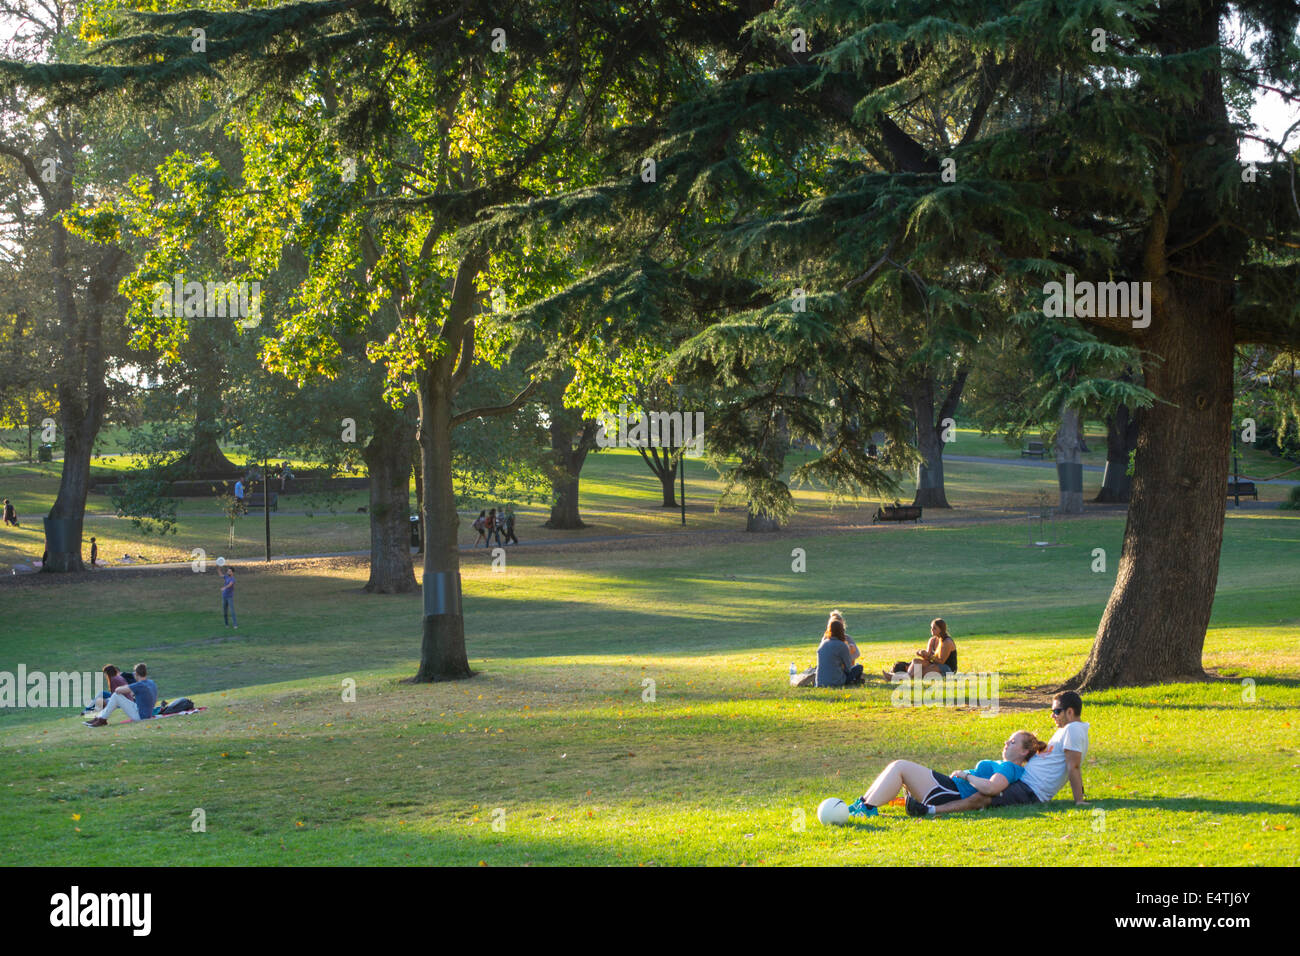 Australia, Victoria, West Melbourne, Flagstaff Gardens, public park, lawn, grass, trees, residents, relaxing, sightseeing Stock Photo